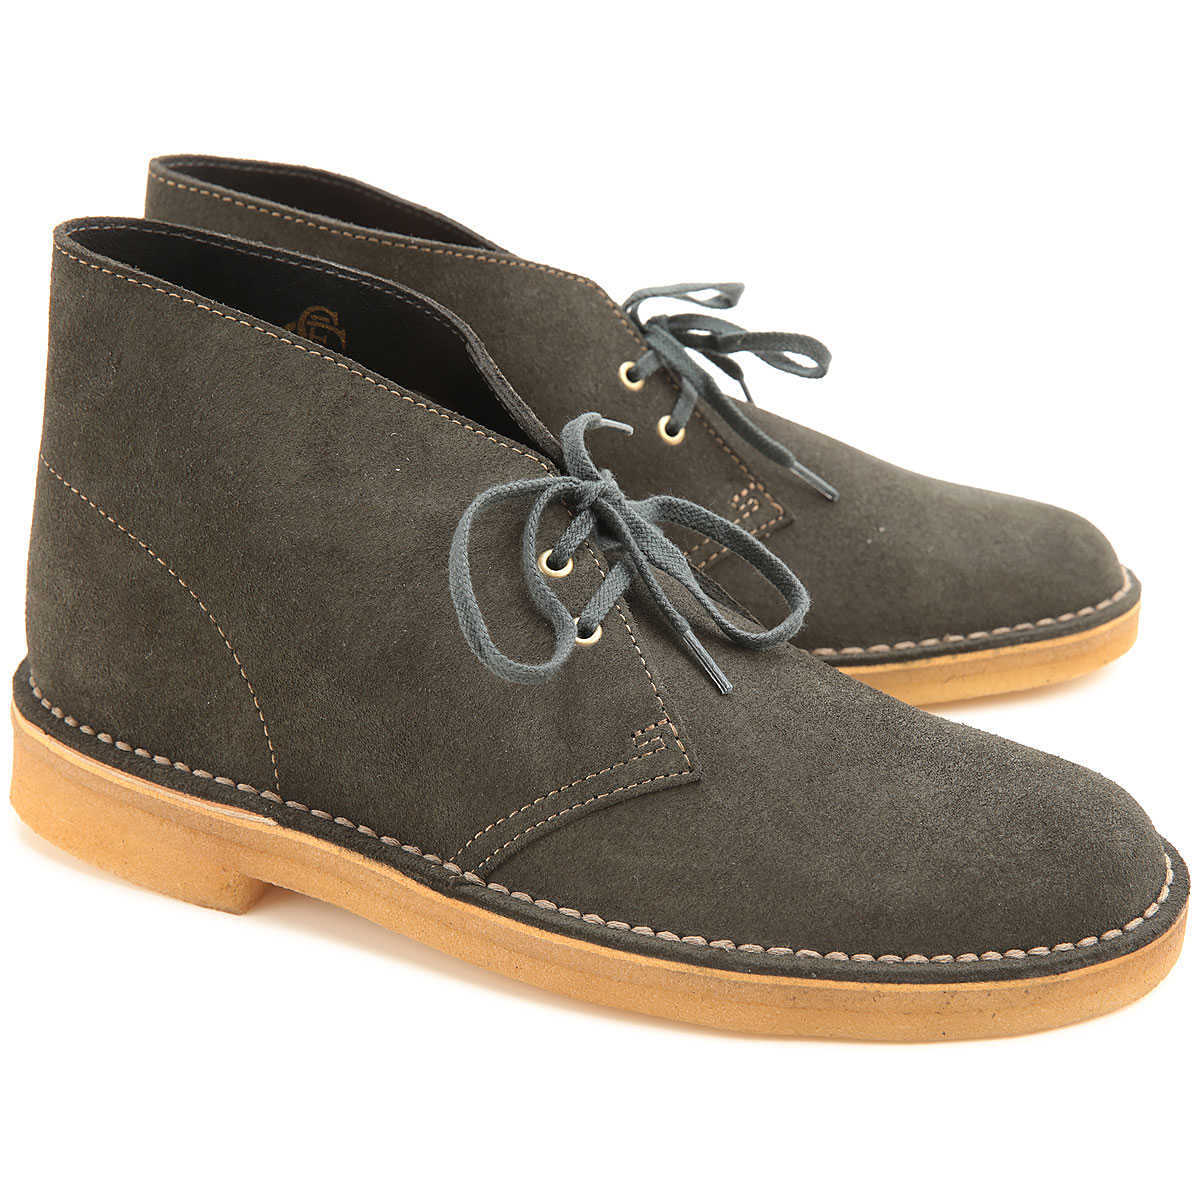 Clarks Boots for Men Booties On Sale DK - GOOFASH - Mens BOOTS